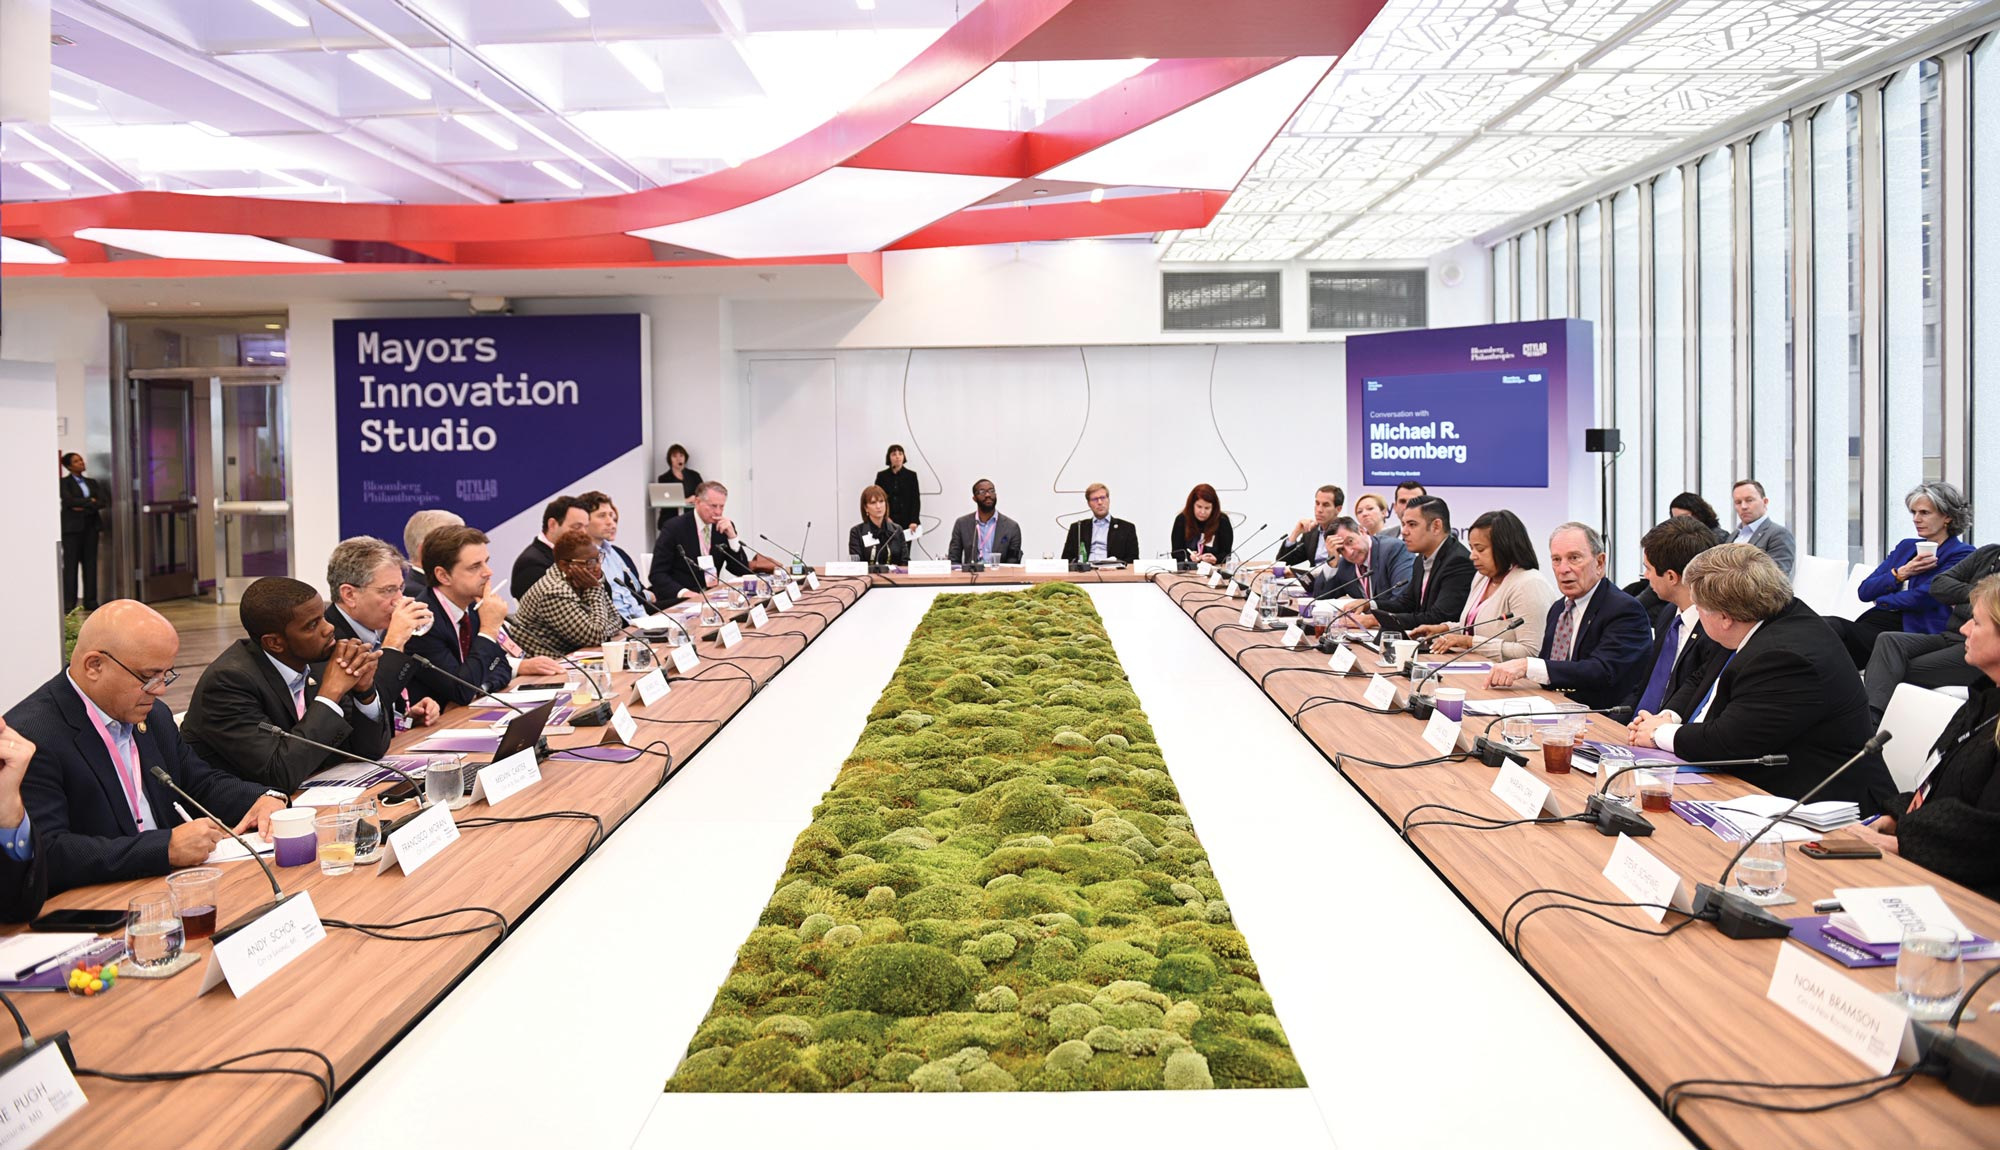 Mayors come together at the Mayors Innovation Studio at CityLab 2018 to discuss solutions to the challenges their cities face.